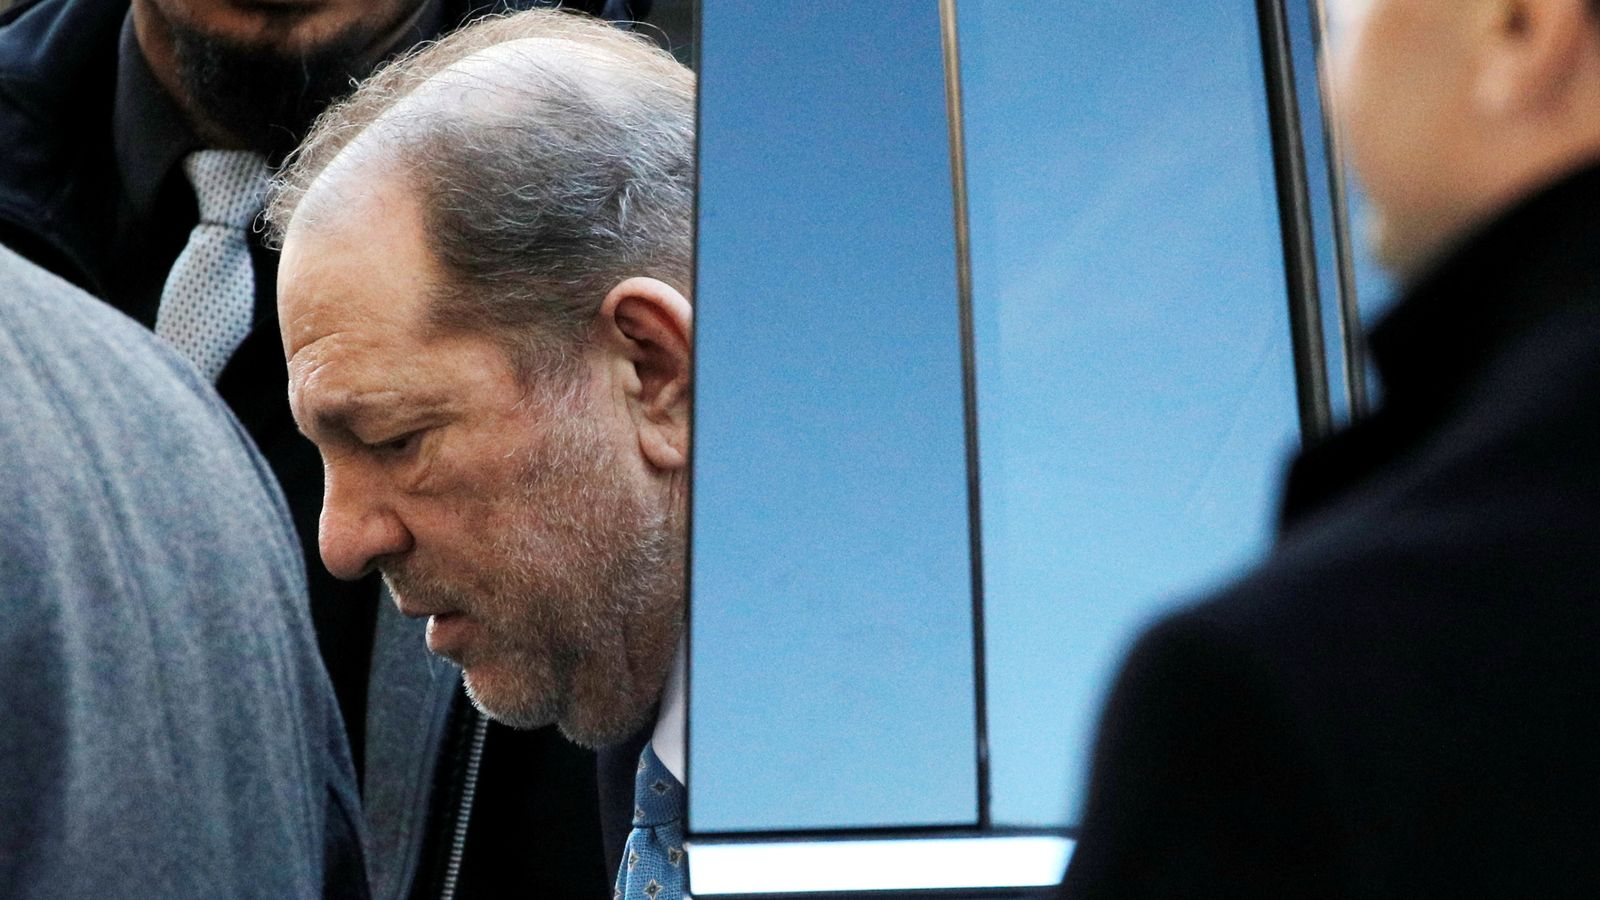 Harvey Weinstein: Former Hollywood producer extradited to California to face more sexual assault charges